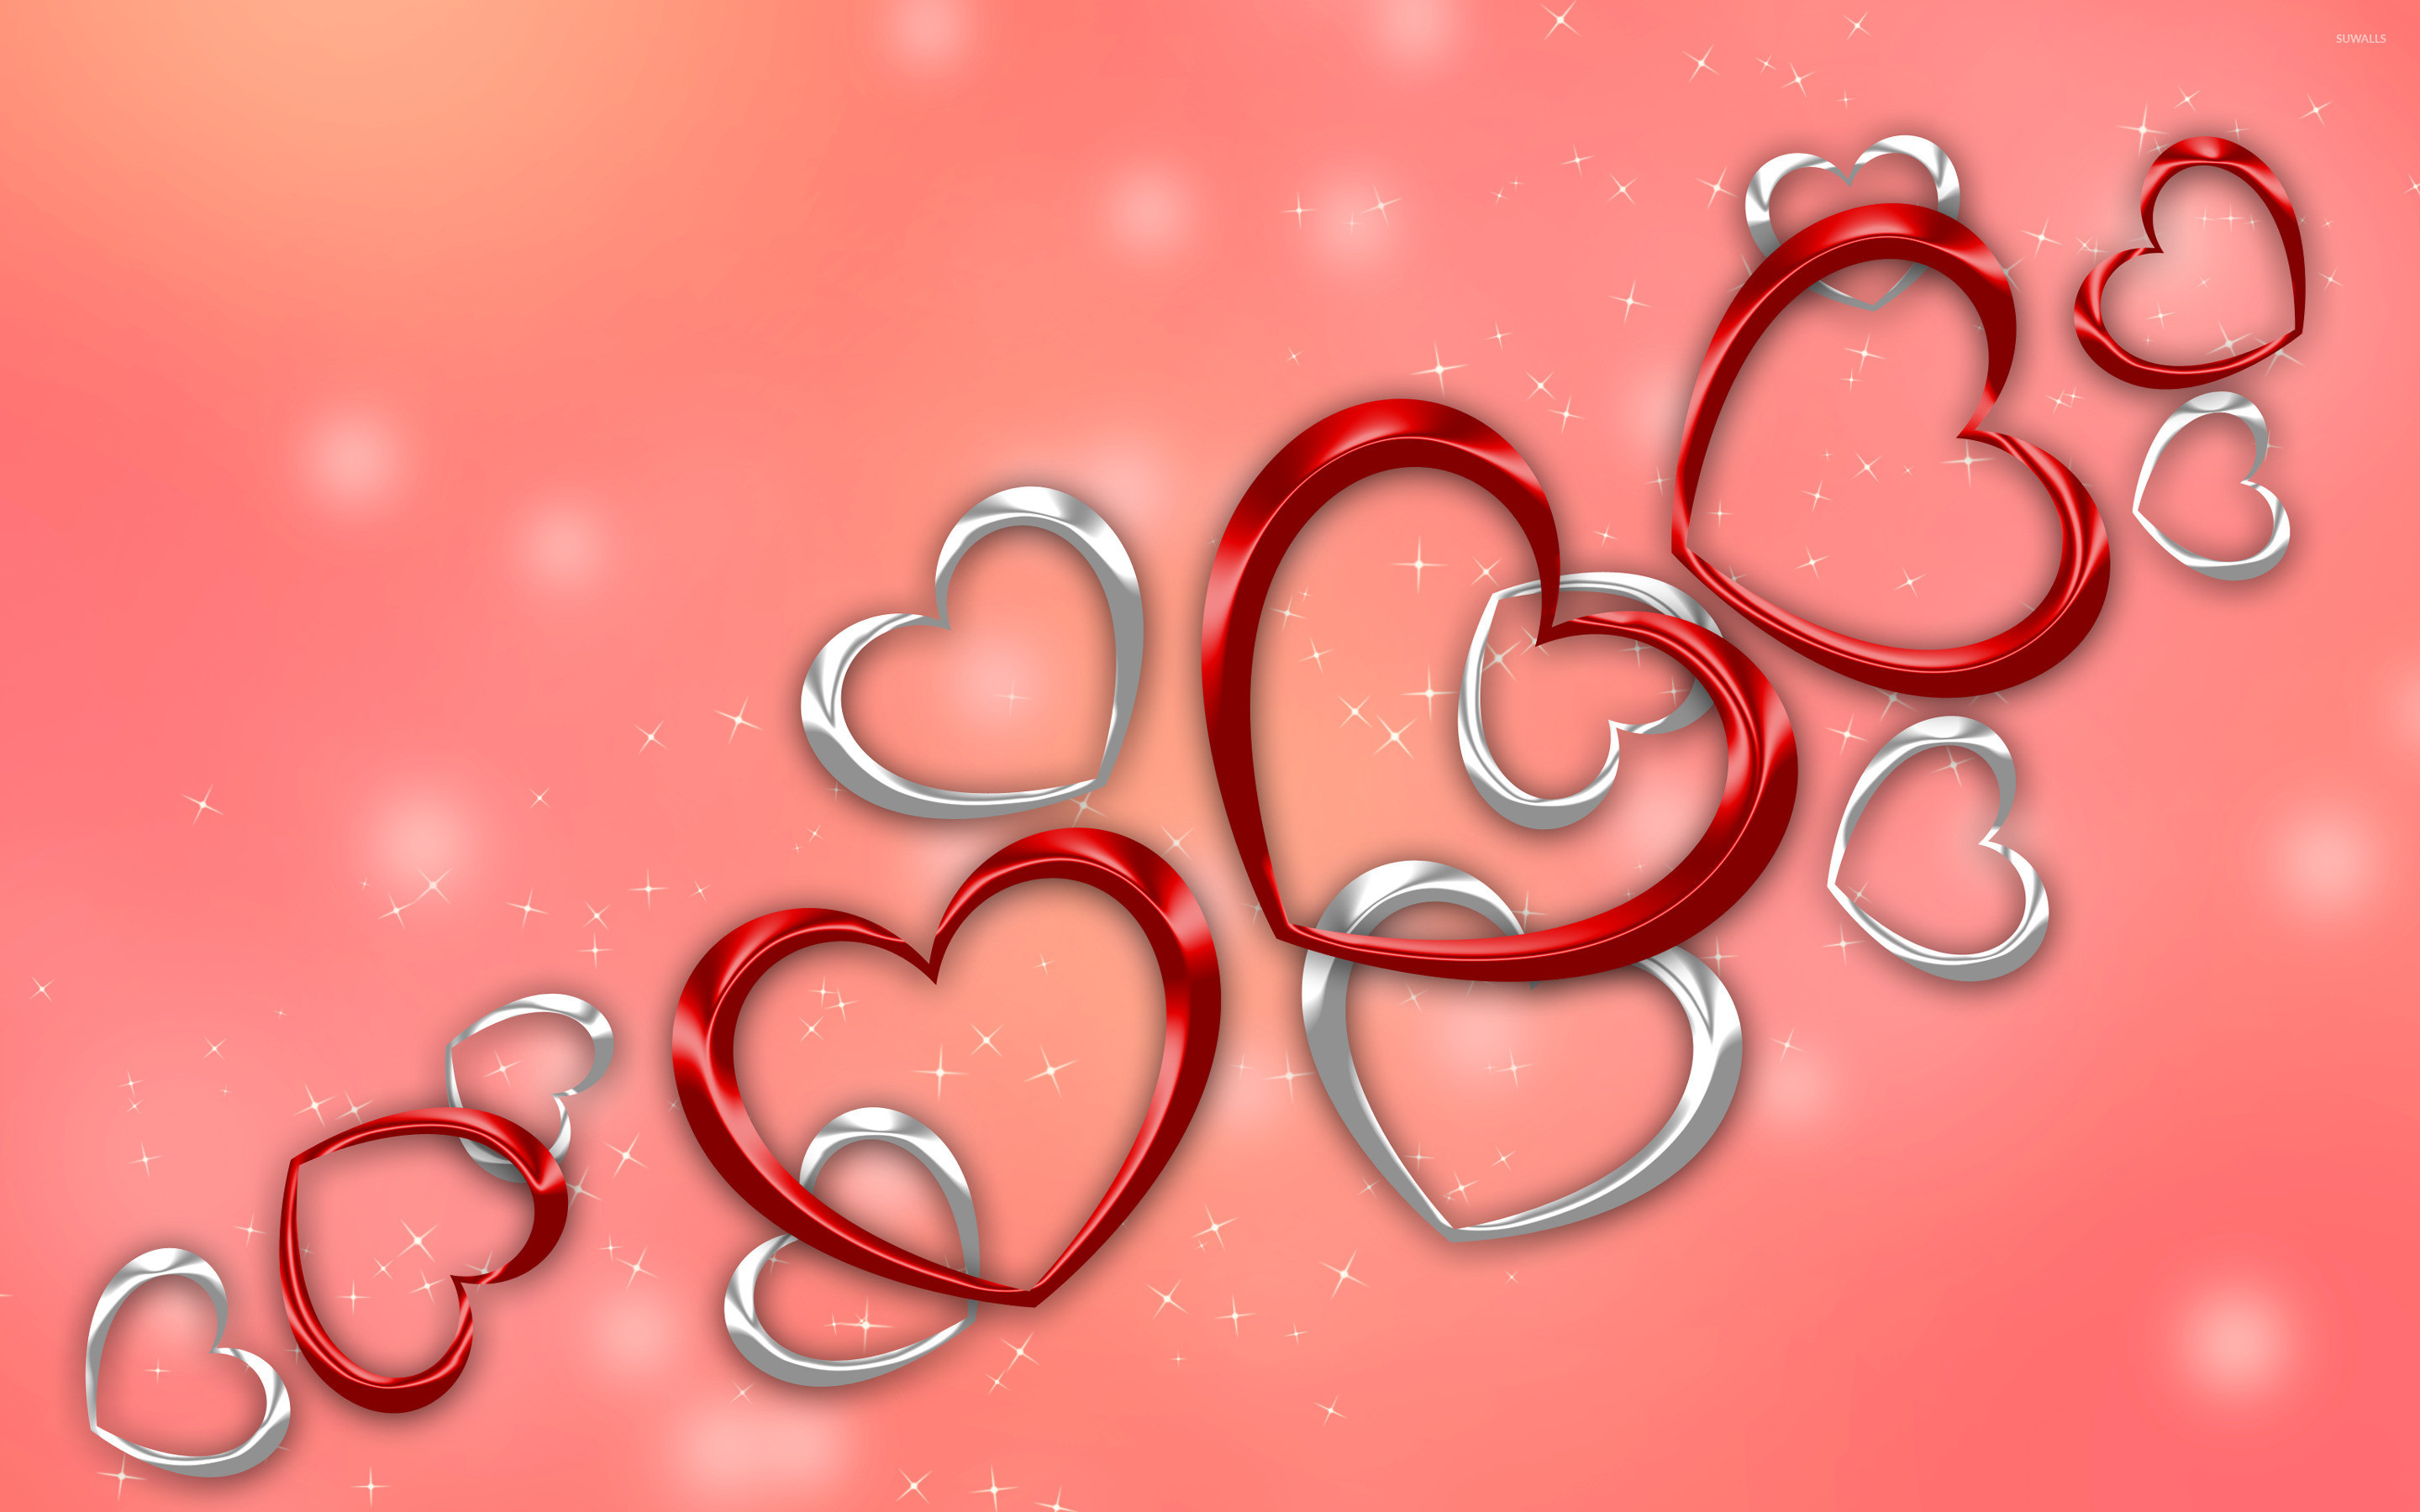 2880x1800 Red and silver hearts wallpaper